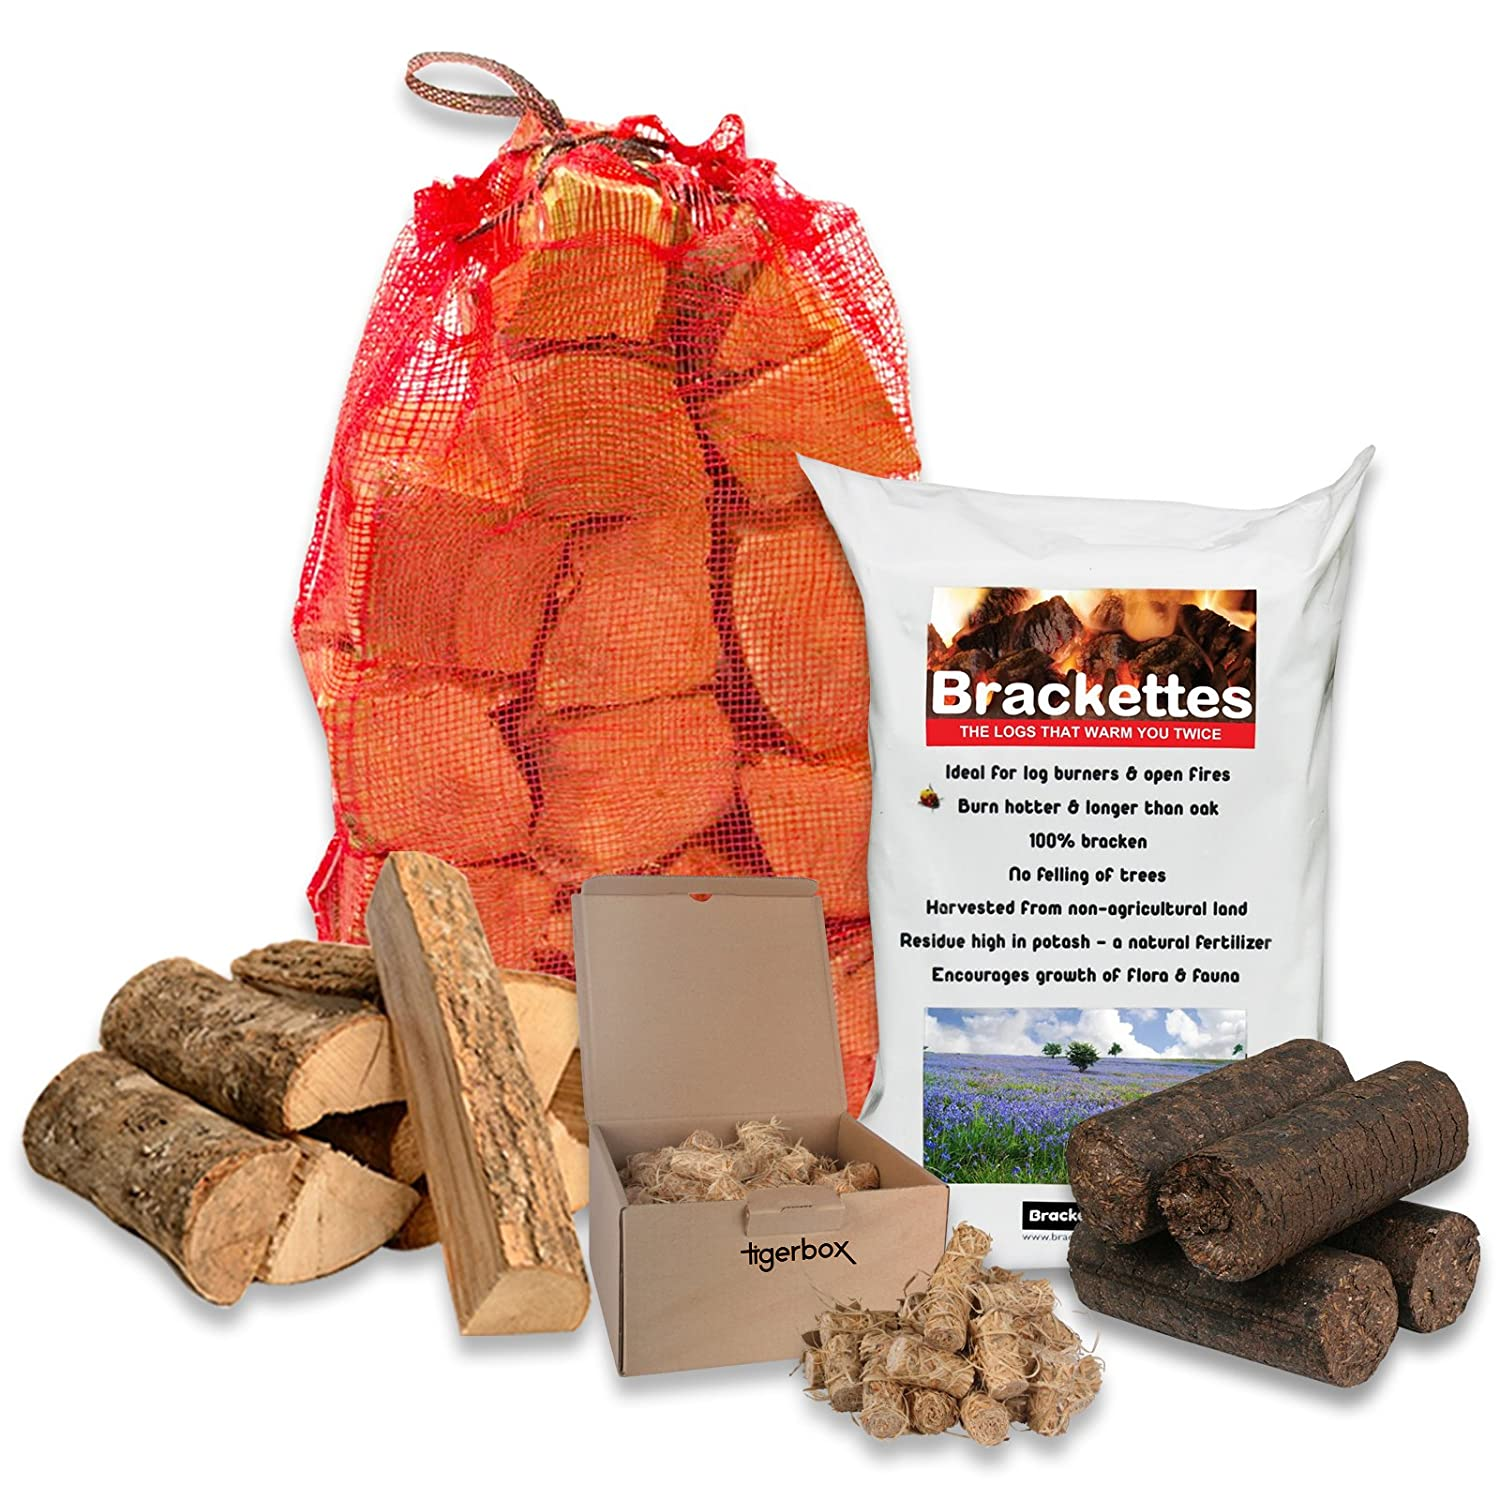 10 Brackenburn Brackettes Extra Hot Solid Fuel Bracken Logs, 15KG of Kiln Dried Hardwood, Natural Wood Wool Eco Firelighters & Tigerbox Safety Matches.